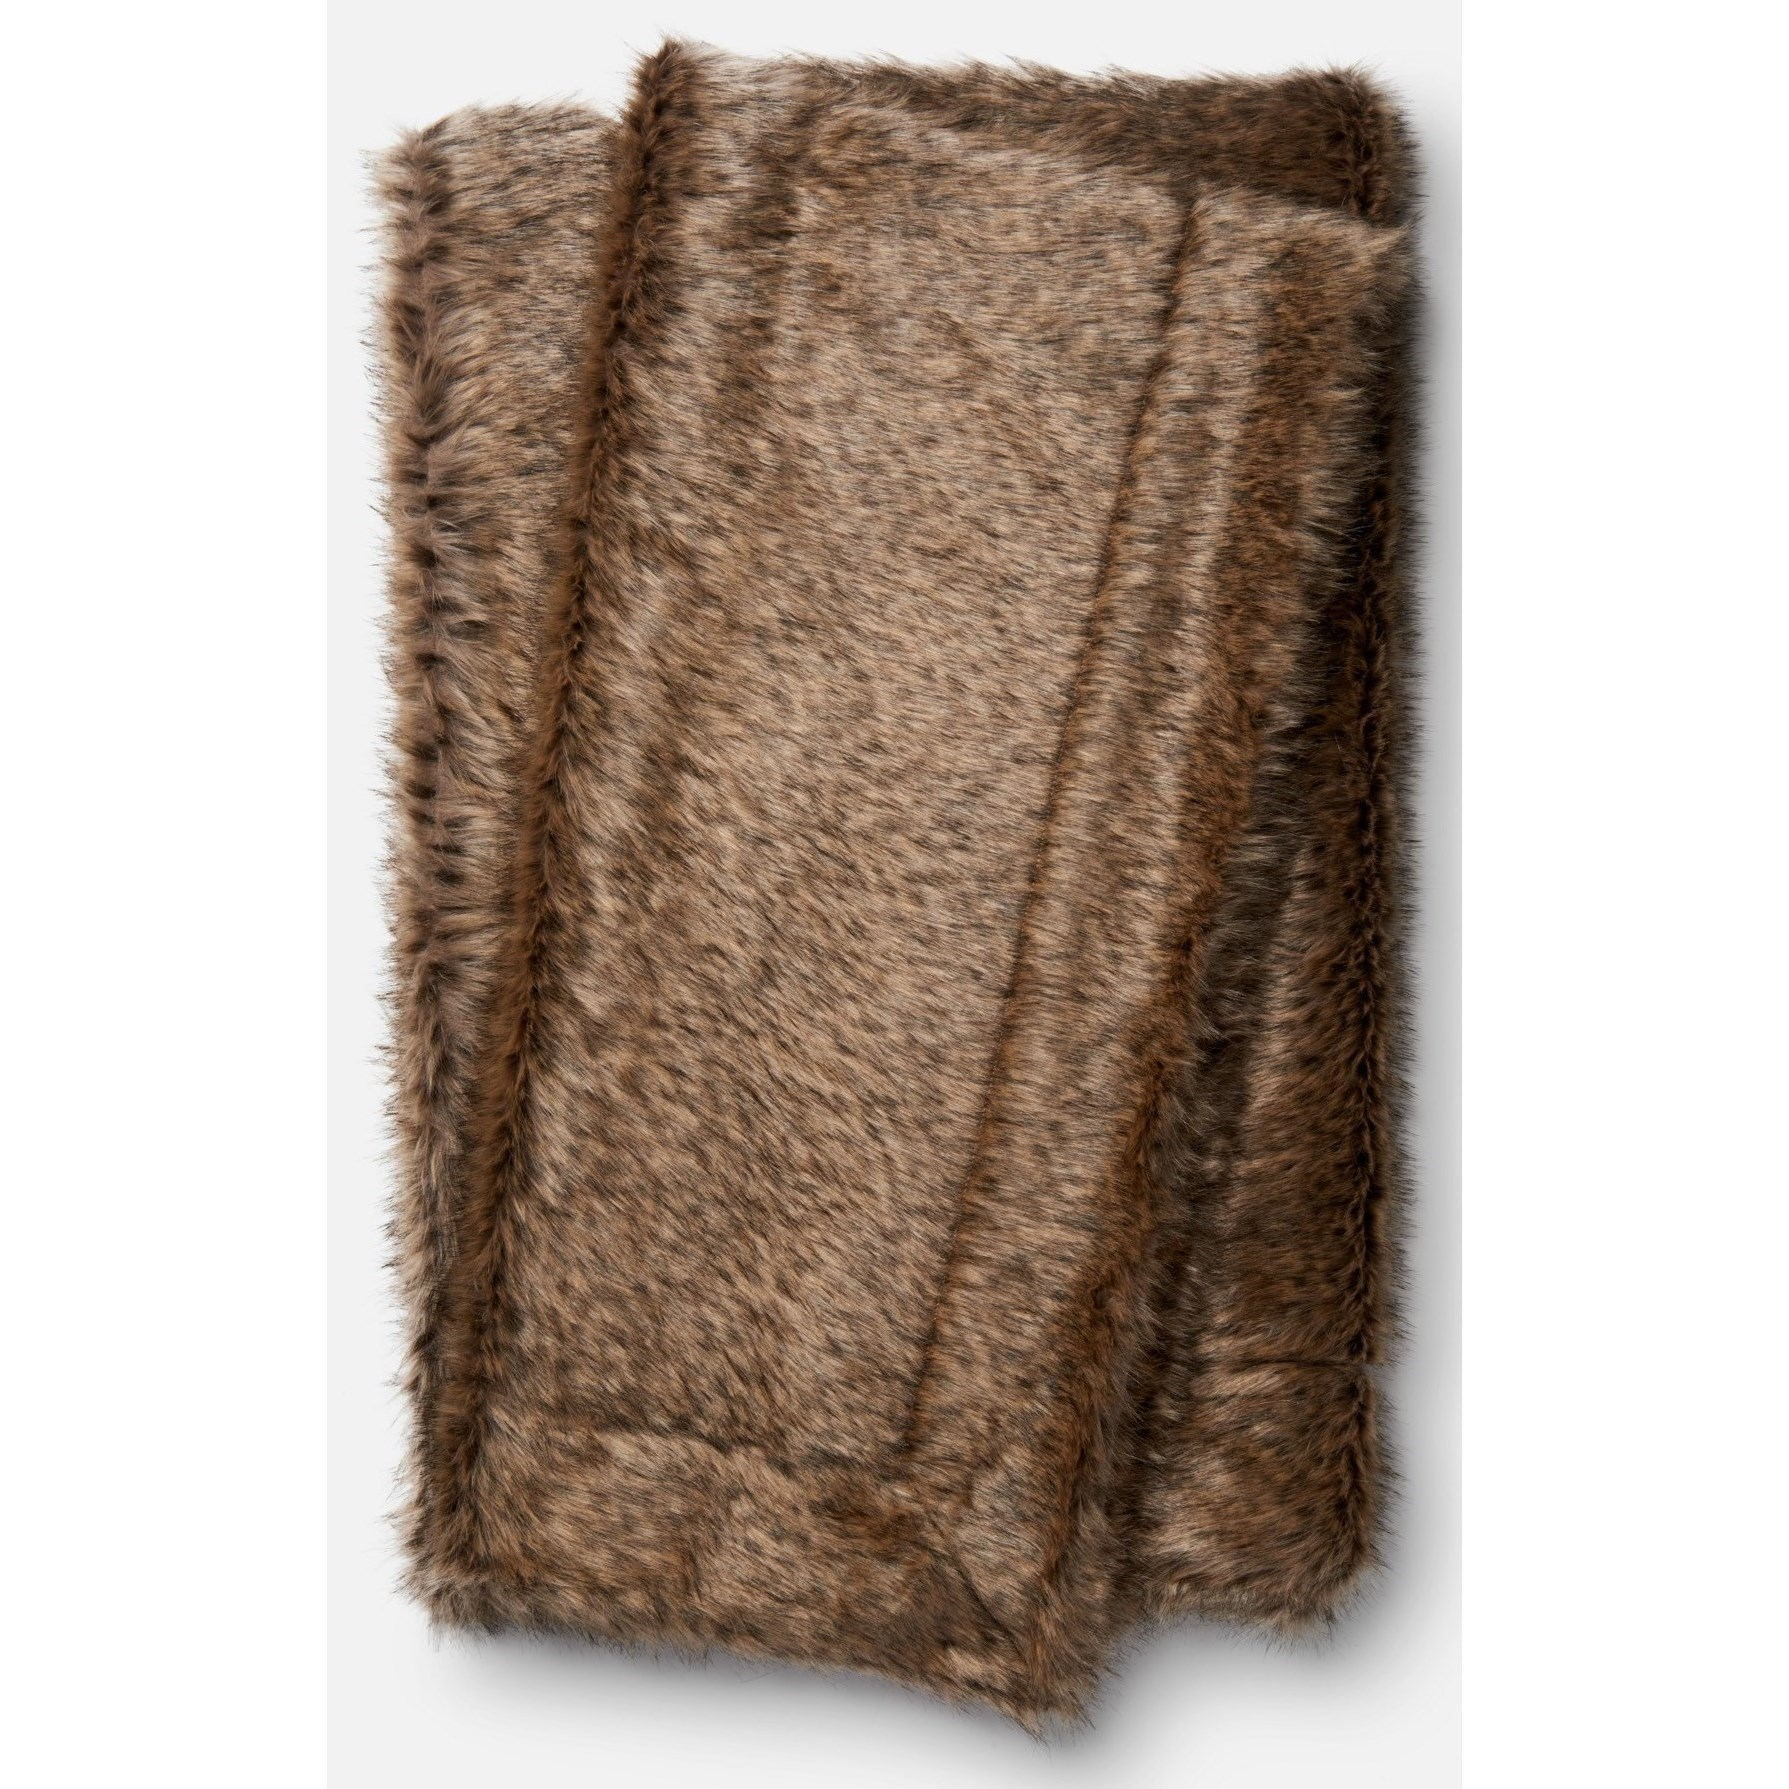 Throw Blankets Loloi Rugs Zora Zorat0027ml00th01 Multi 100 Acrylic Throw Blanket